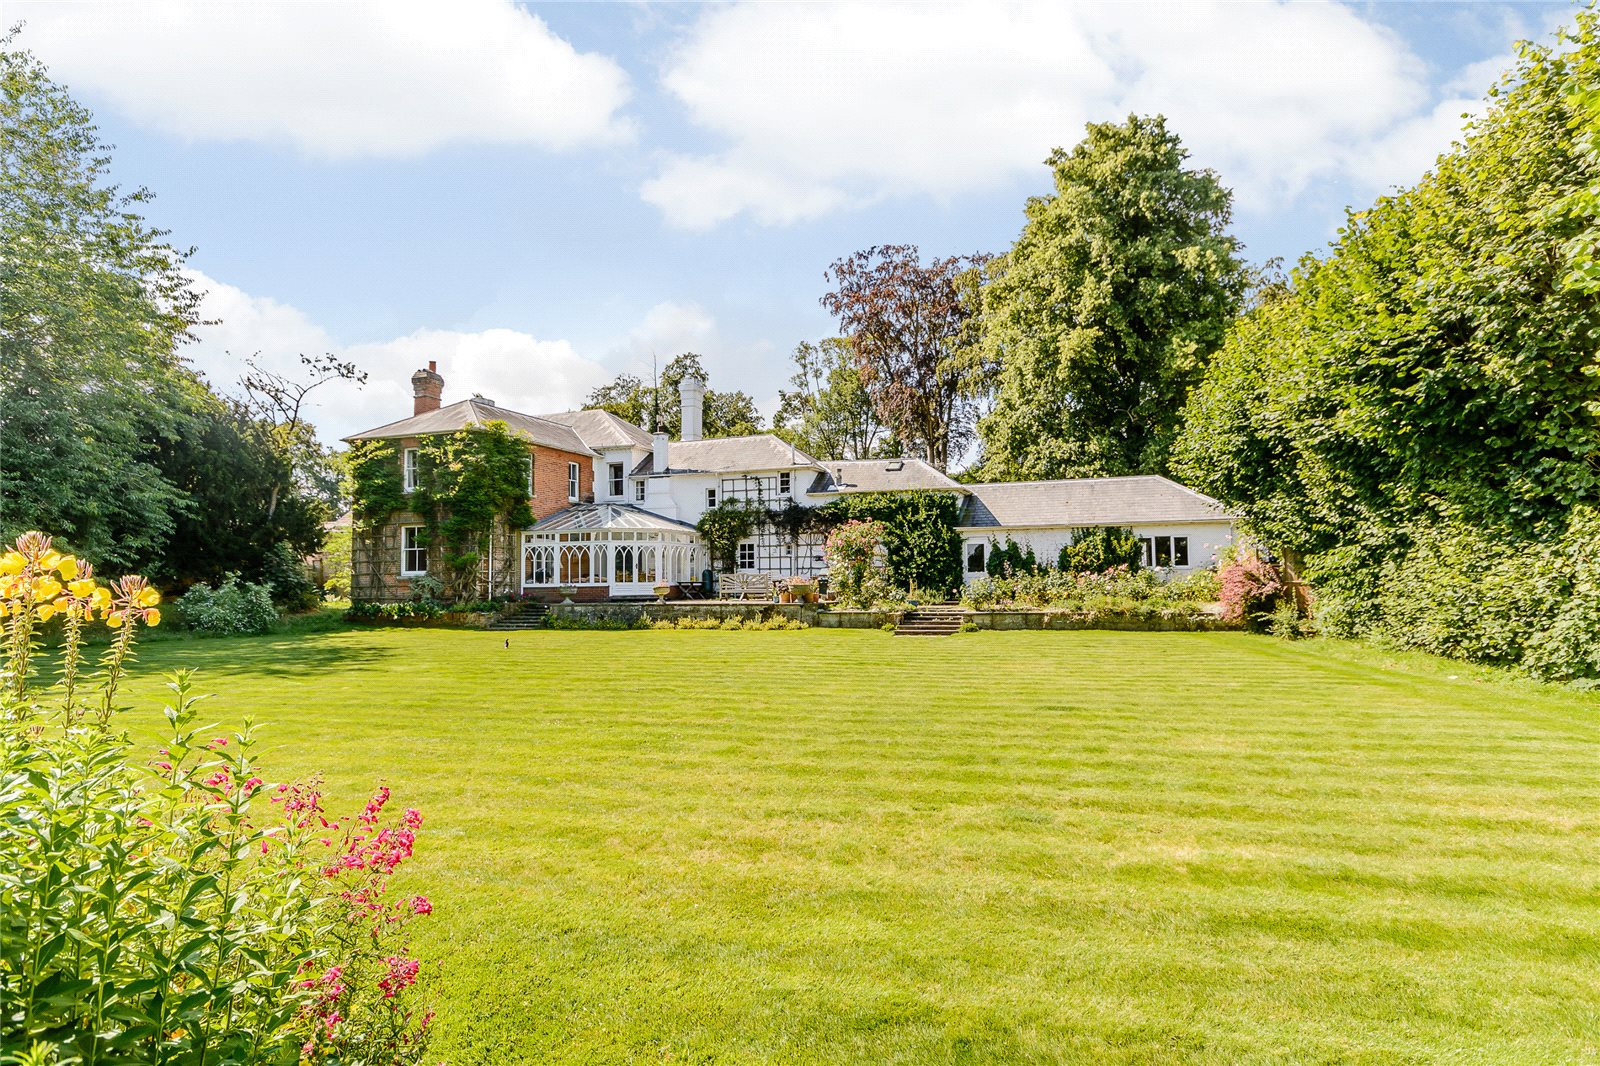 Additional photo for property listing at Thackhams Lane, Hartley Wintney, Hampshire, RG27 Hartley Wintney, England